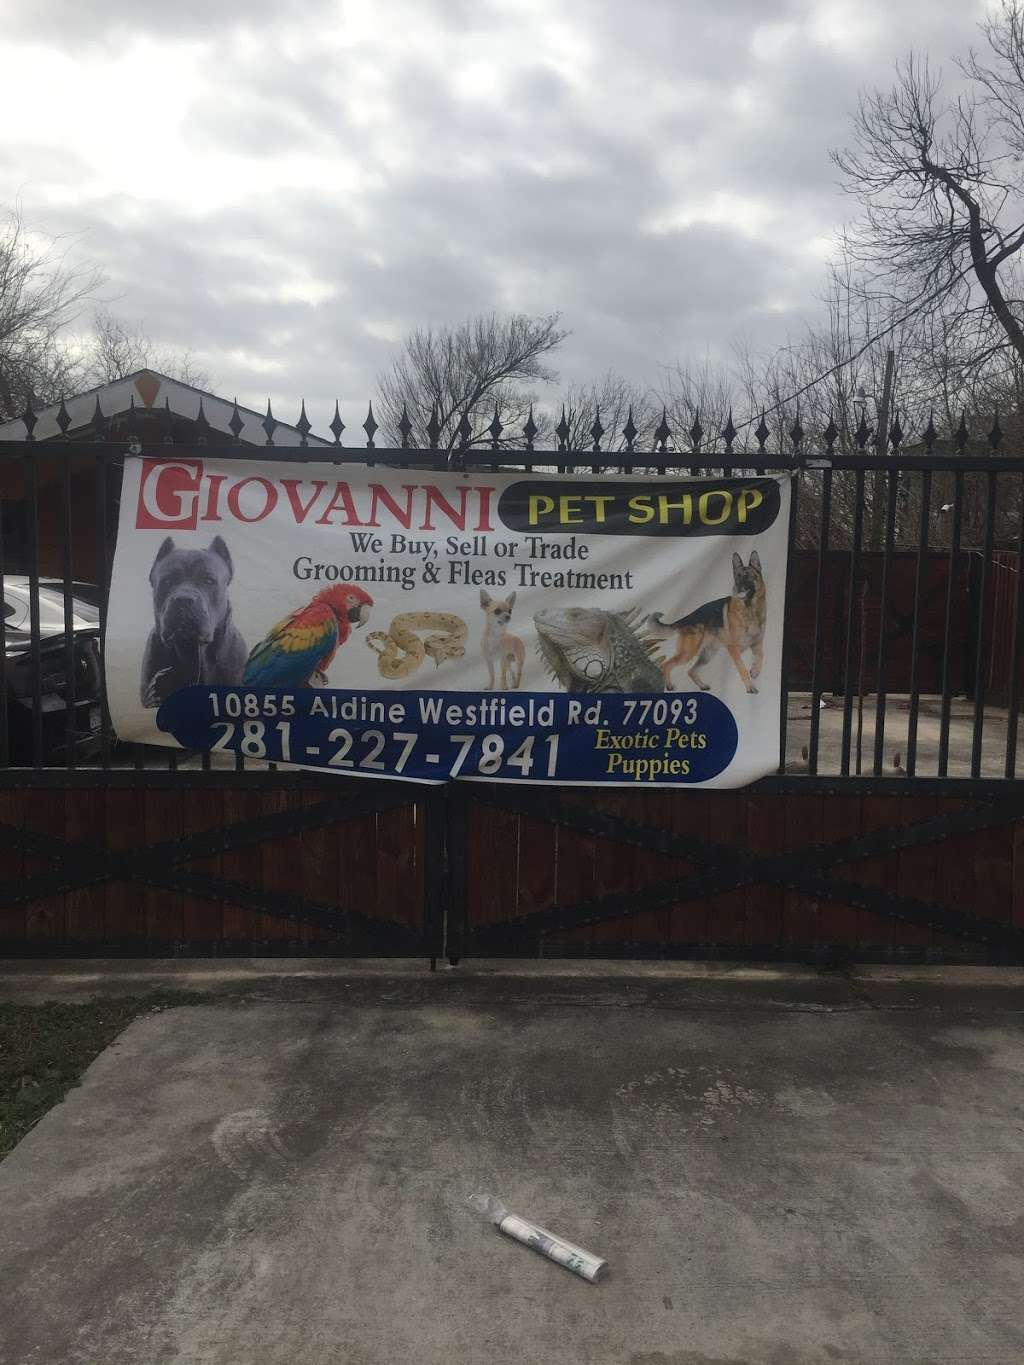 Geovannis Pet Shop - pet store  | Photo 4 of 6 | Address: 10855 Aldine Westfield Rd, Houston, TX 77093, USA | Phone: (281) 227-7841